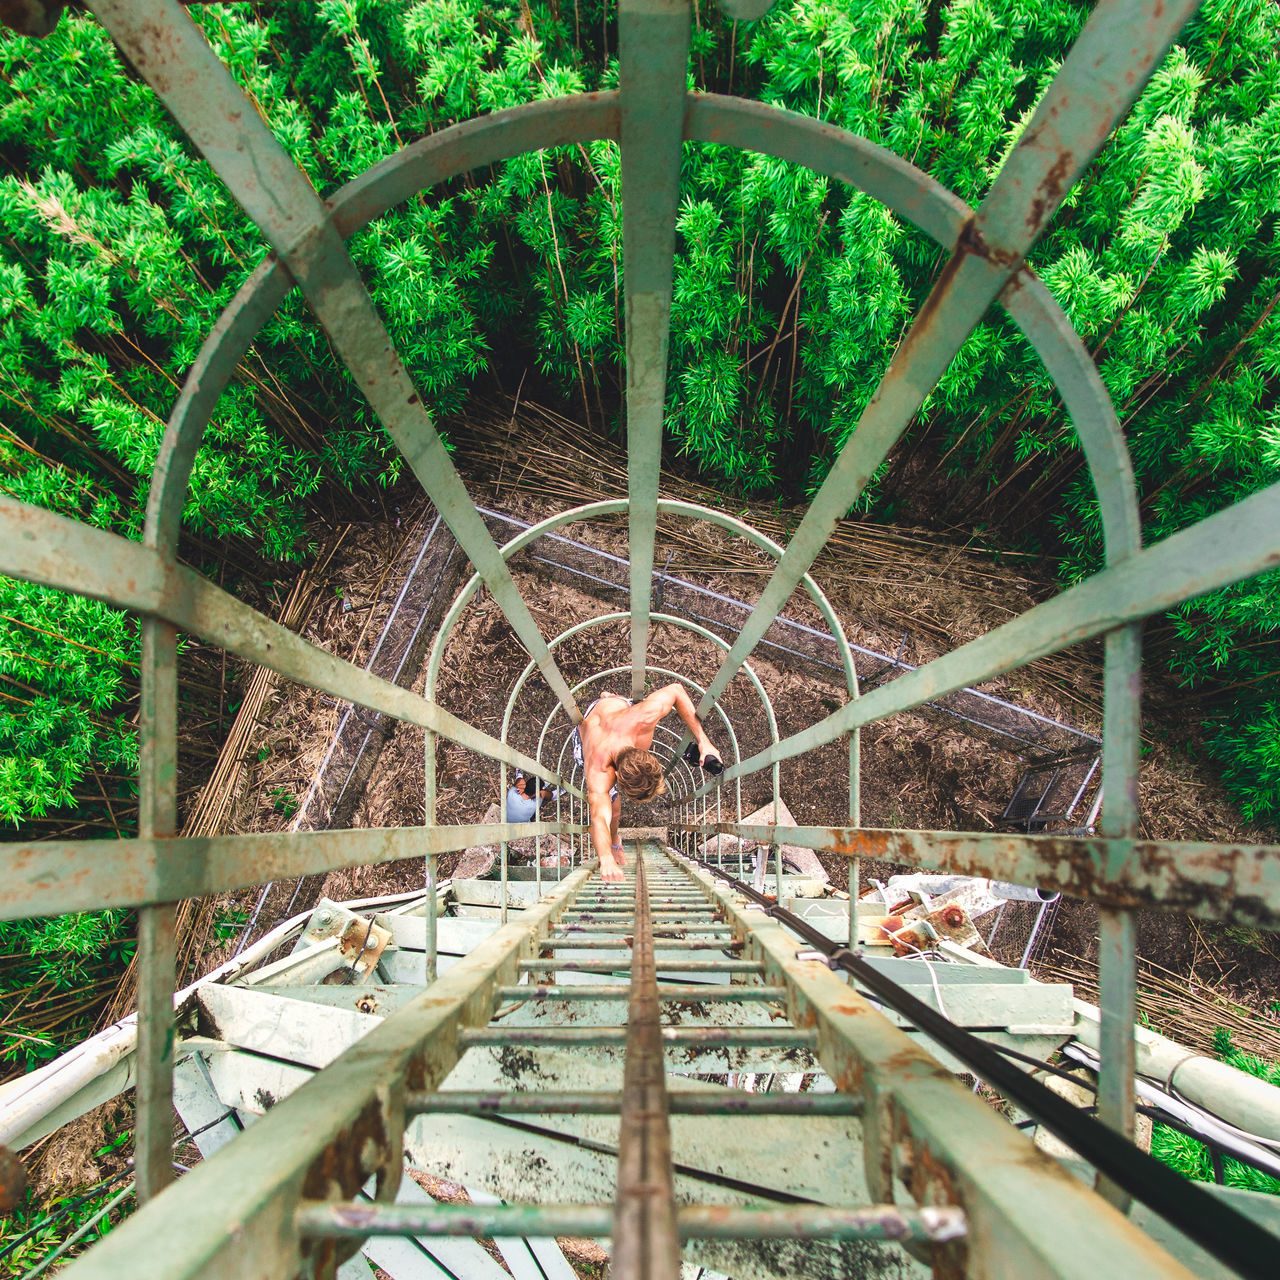 You have to look for the adventure. Adventure won't find you. Adventure Architecture Climbing Day Full Length Green High Angle View Ladder Leading Lines Leisure Activity Lifestyles Men Nature One Person Outdoors People Real People Rust Standing Tree Trees Water The Great Outdoors - 2017 EyeEm Awards